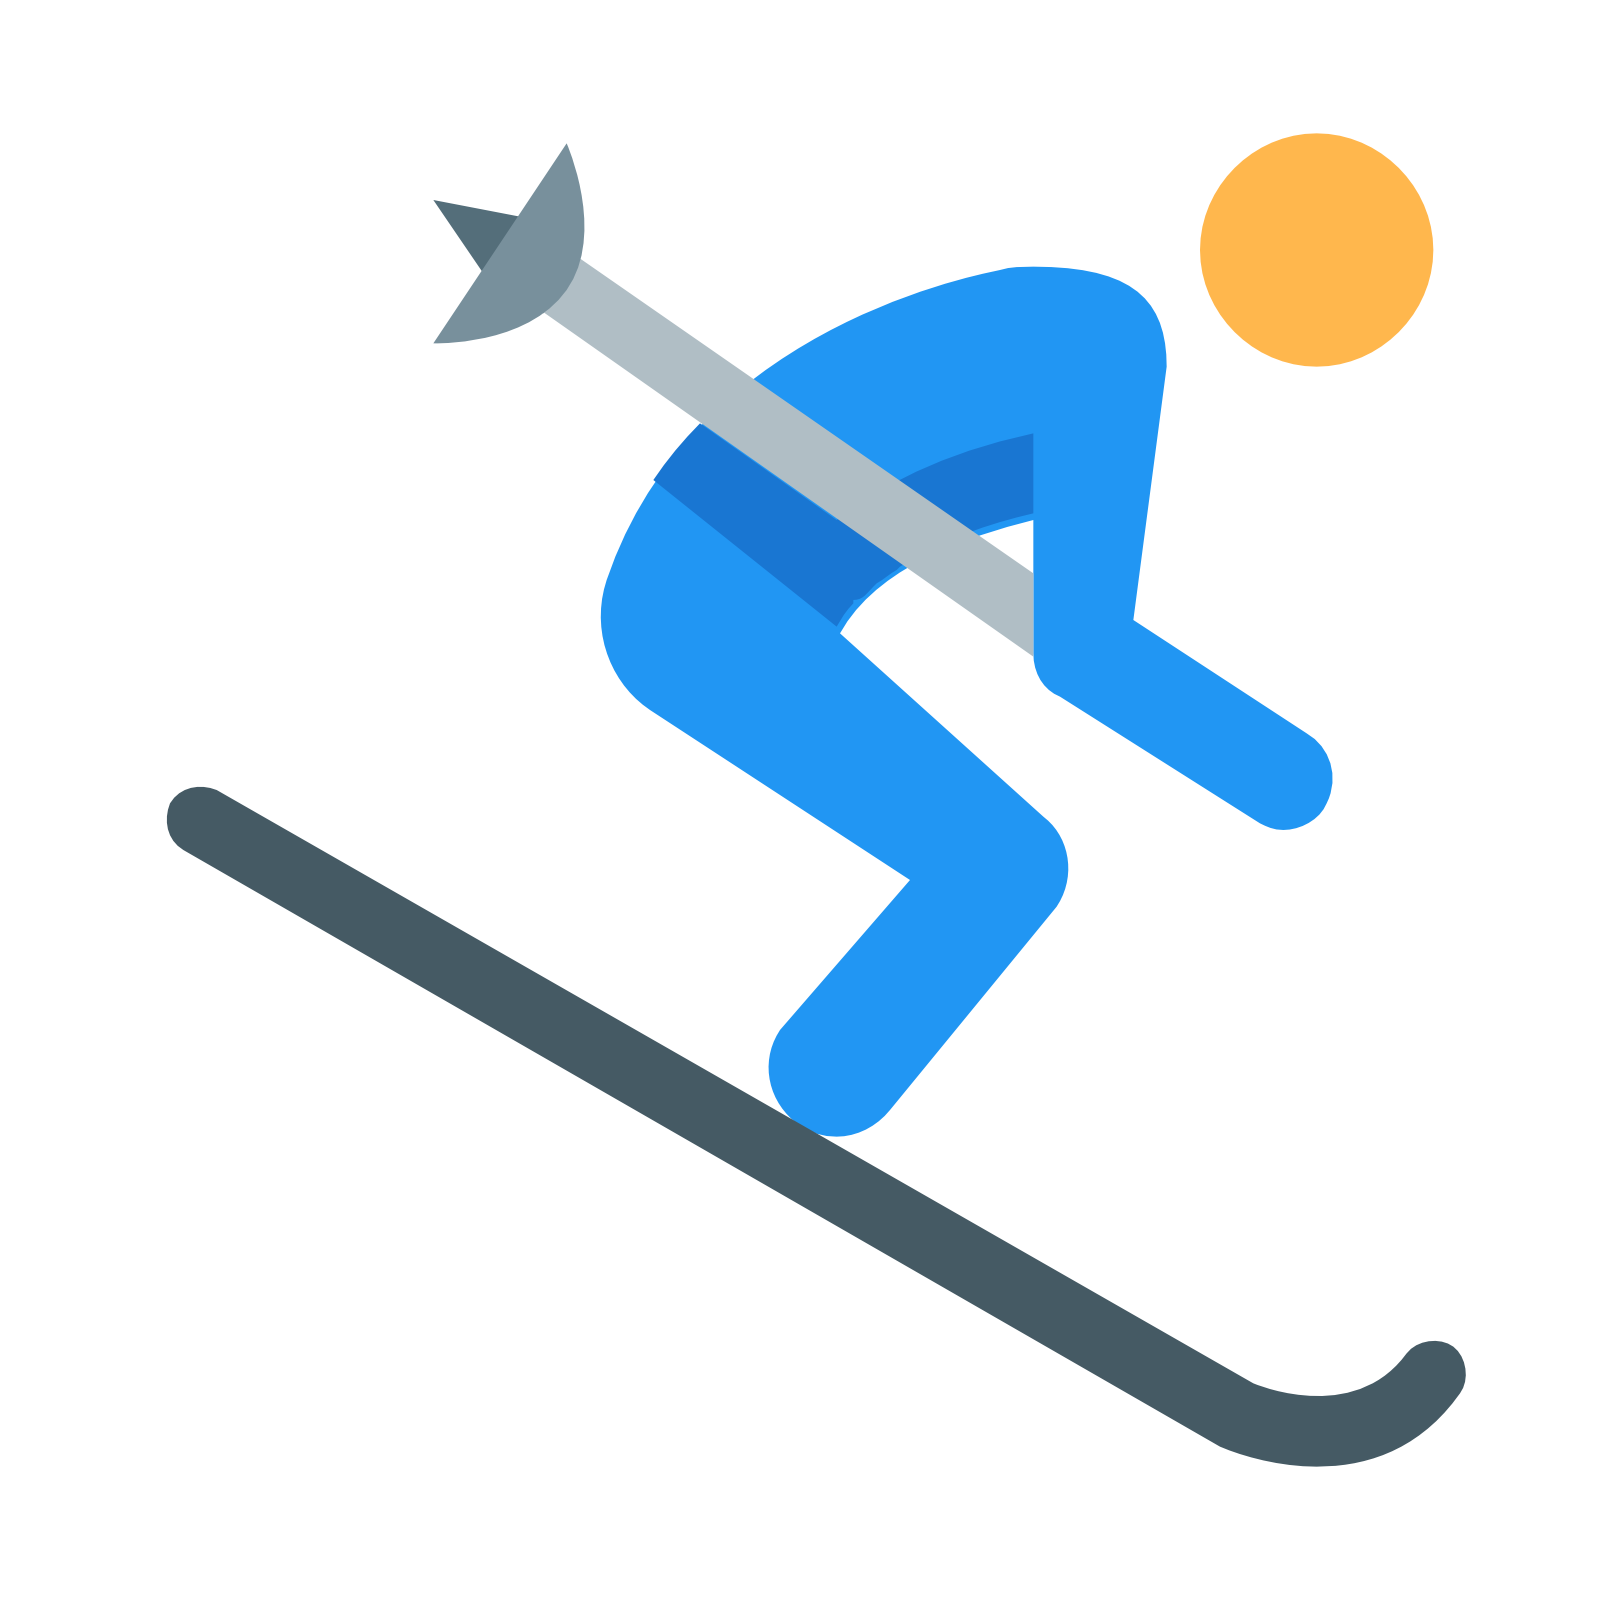 Skiing Transparent Background PNG Image